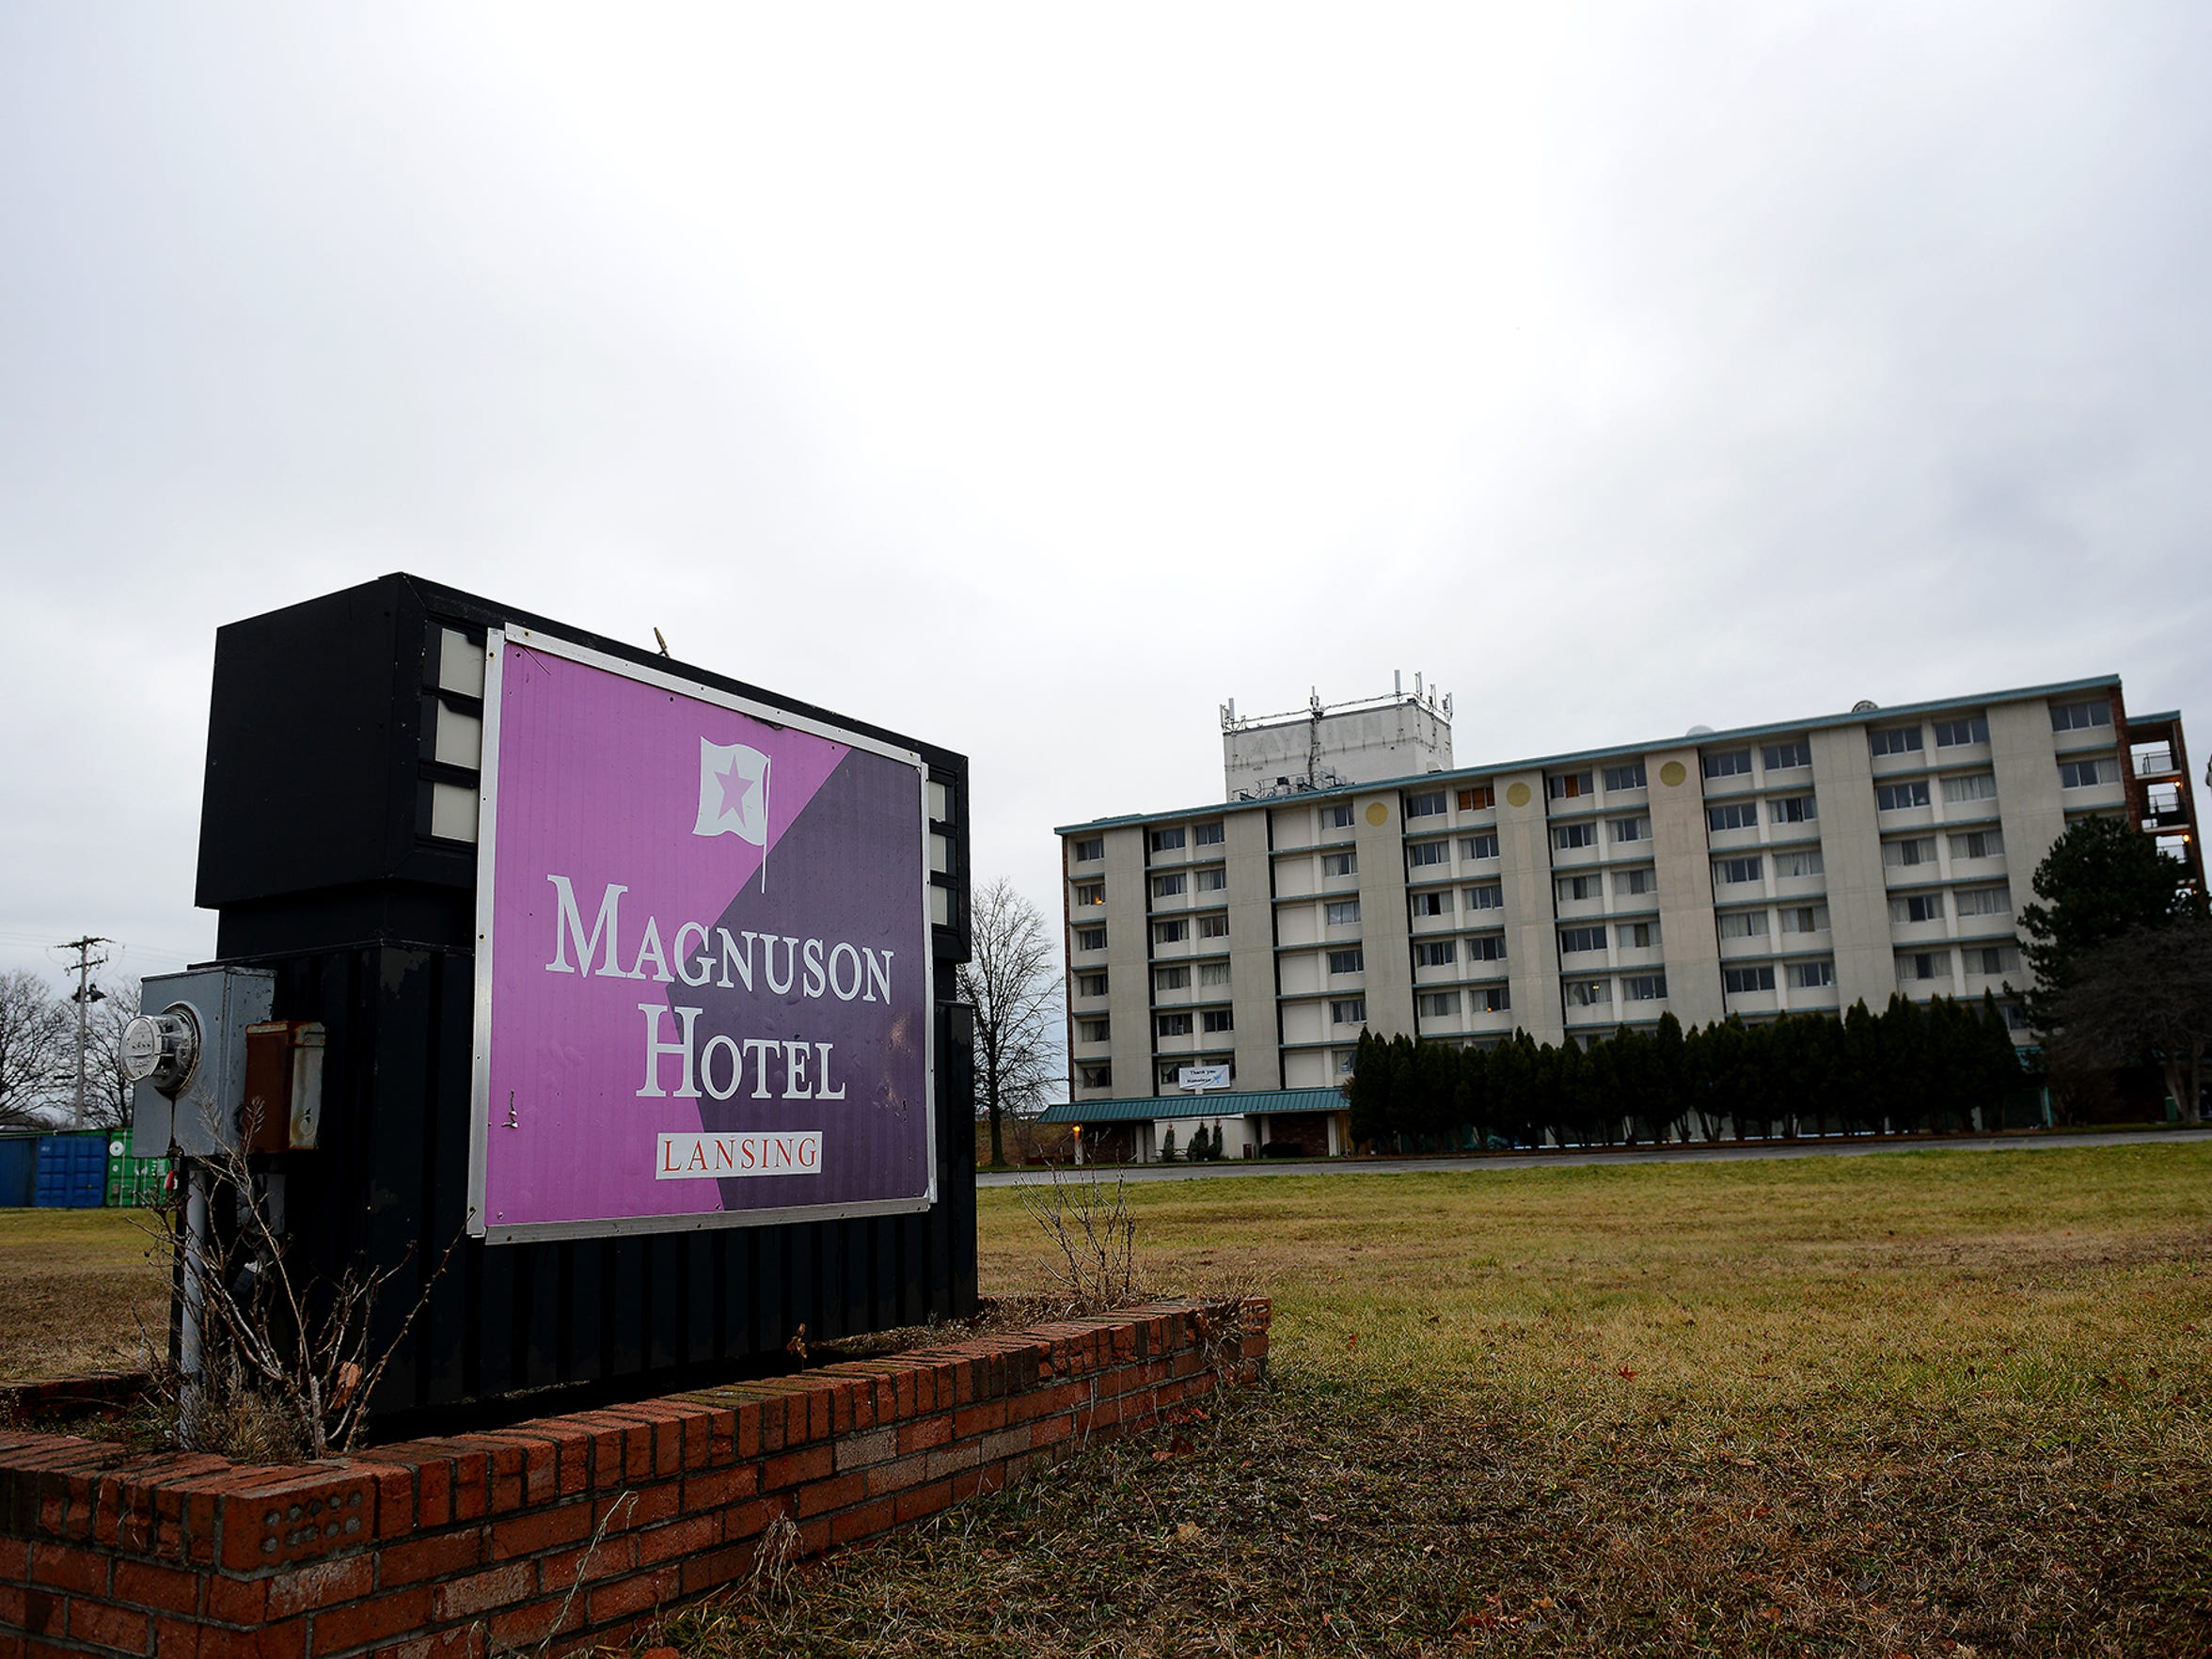 The Magnuson Hotel in South Lansing on Monday, Dec. 14. The hotel, where the nonprofit Homeless Angels is headquartered, is for sale.